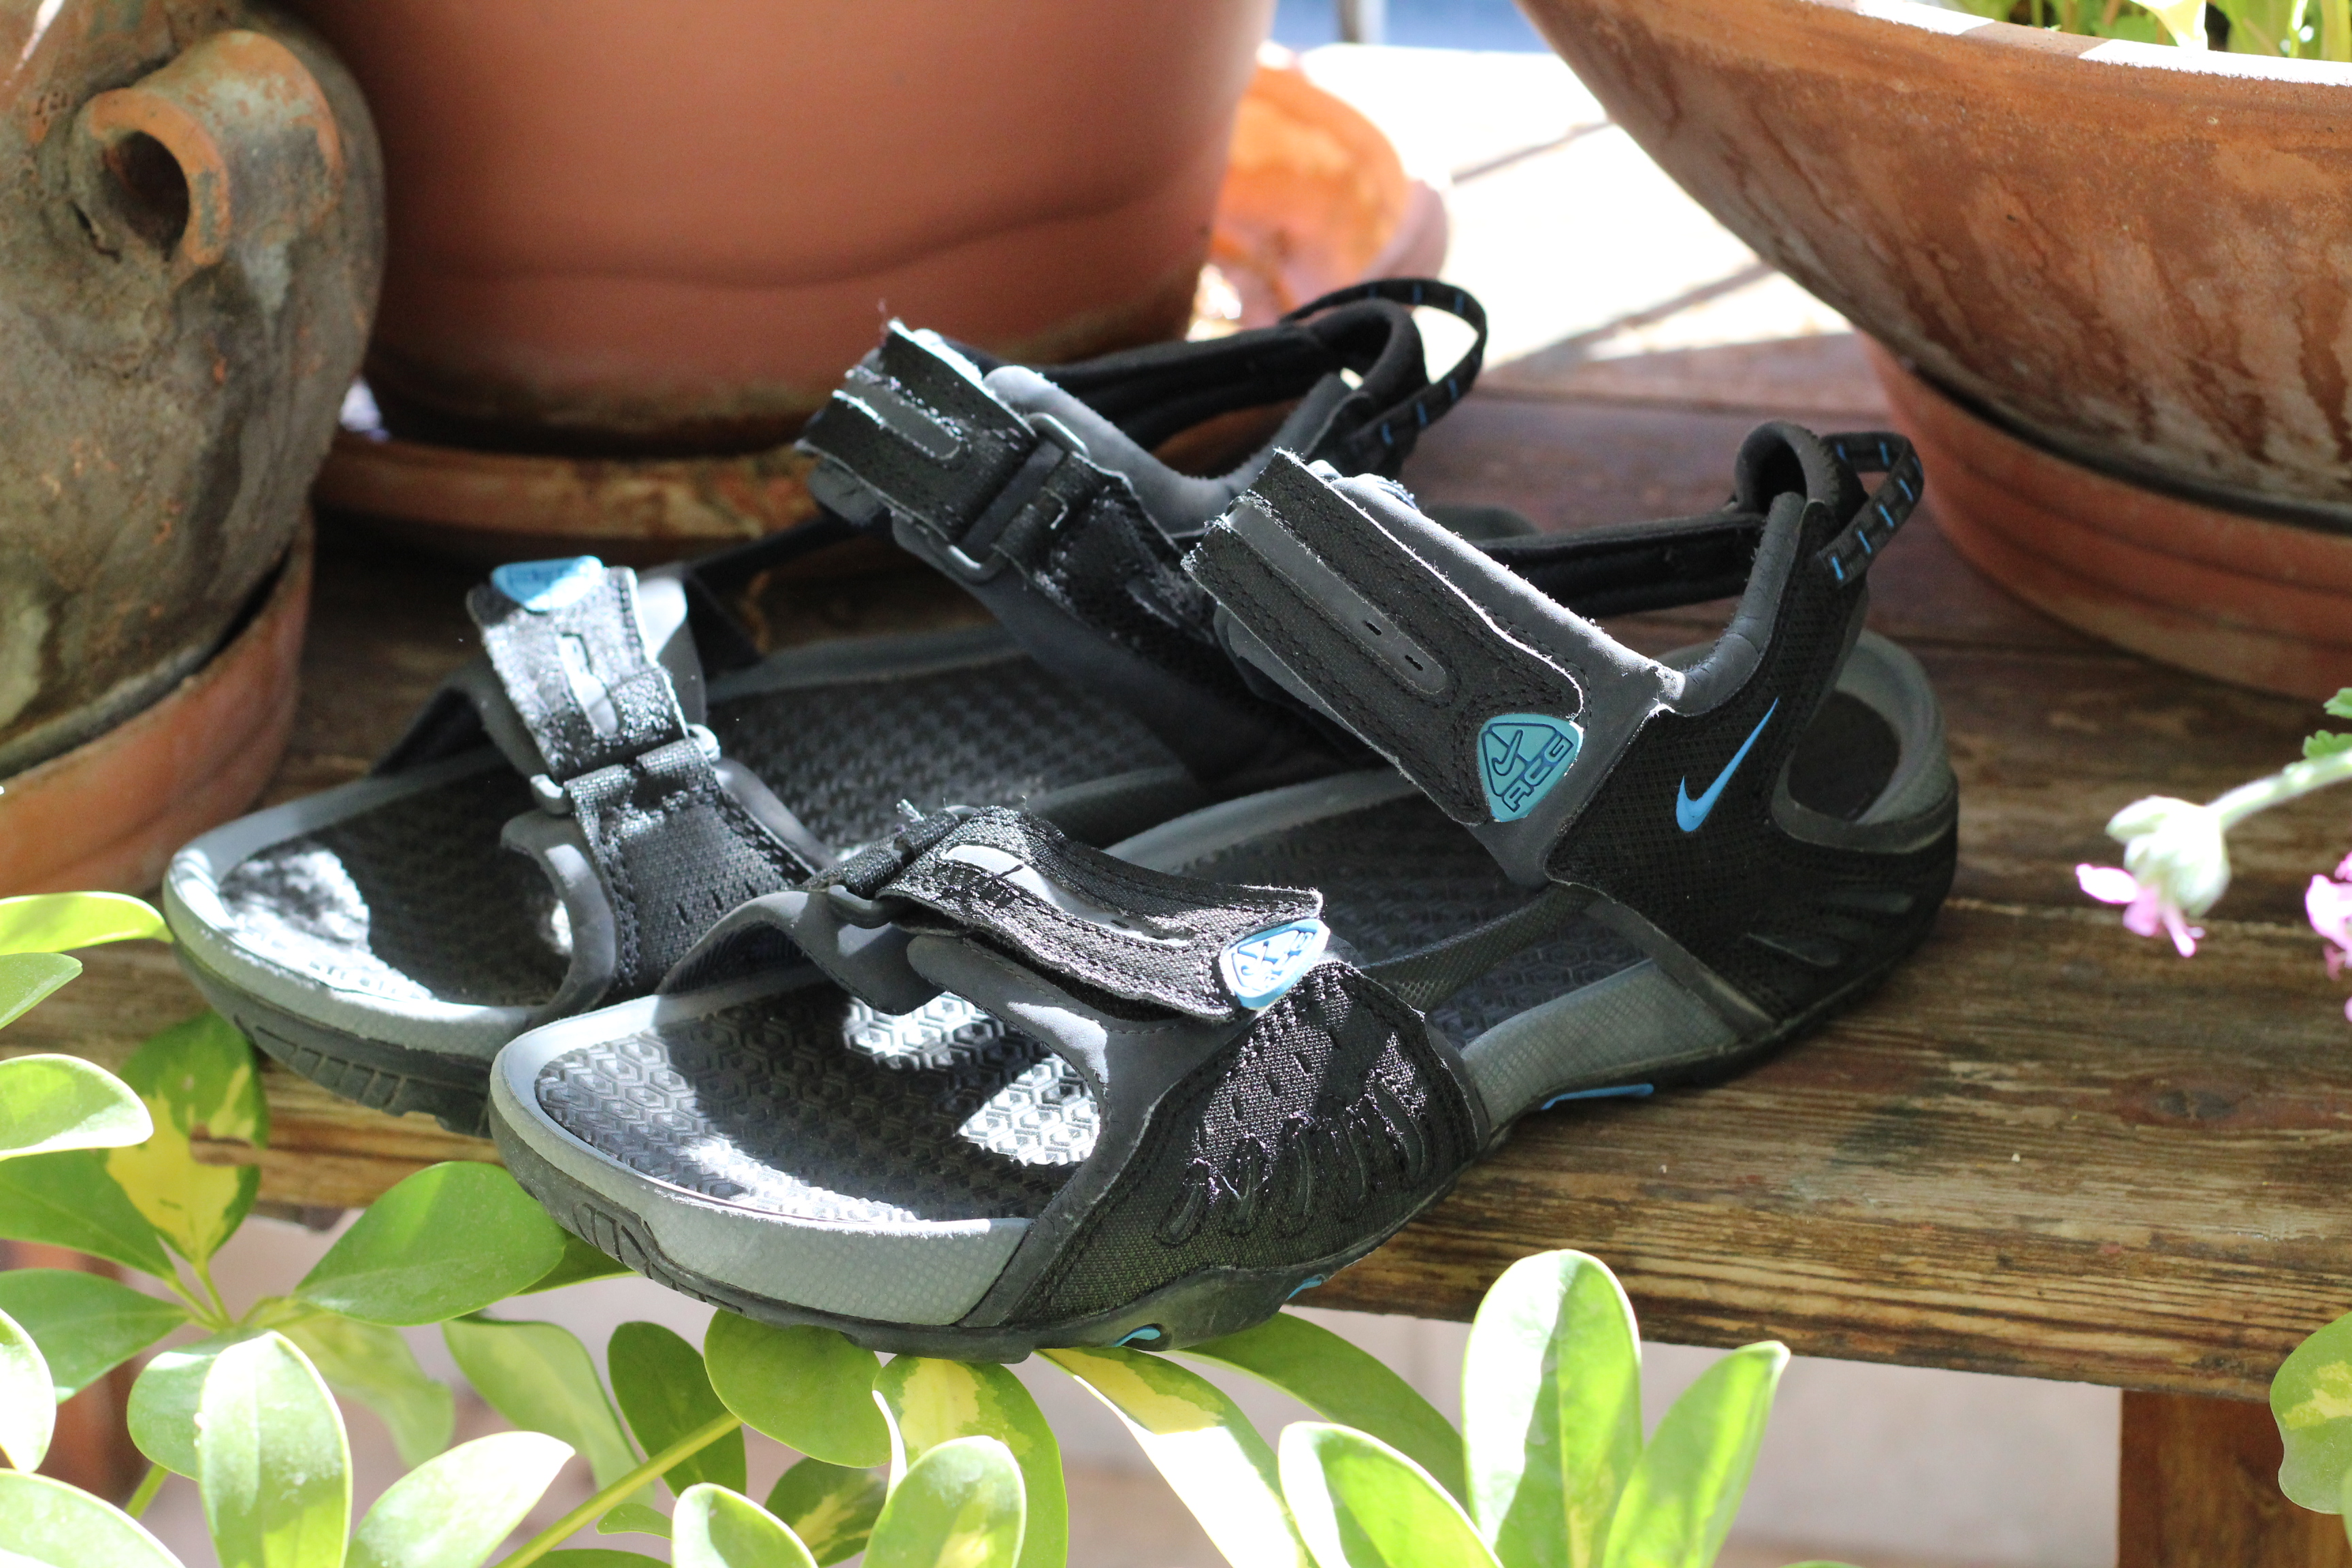 7a5f2001024 Nike Santiam 4 ACG Outdoor sandals Size 9 - Sandals for Sale - Grailed